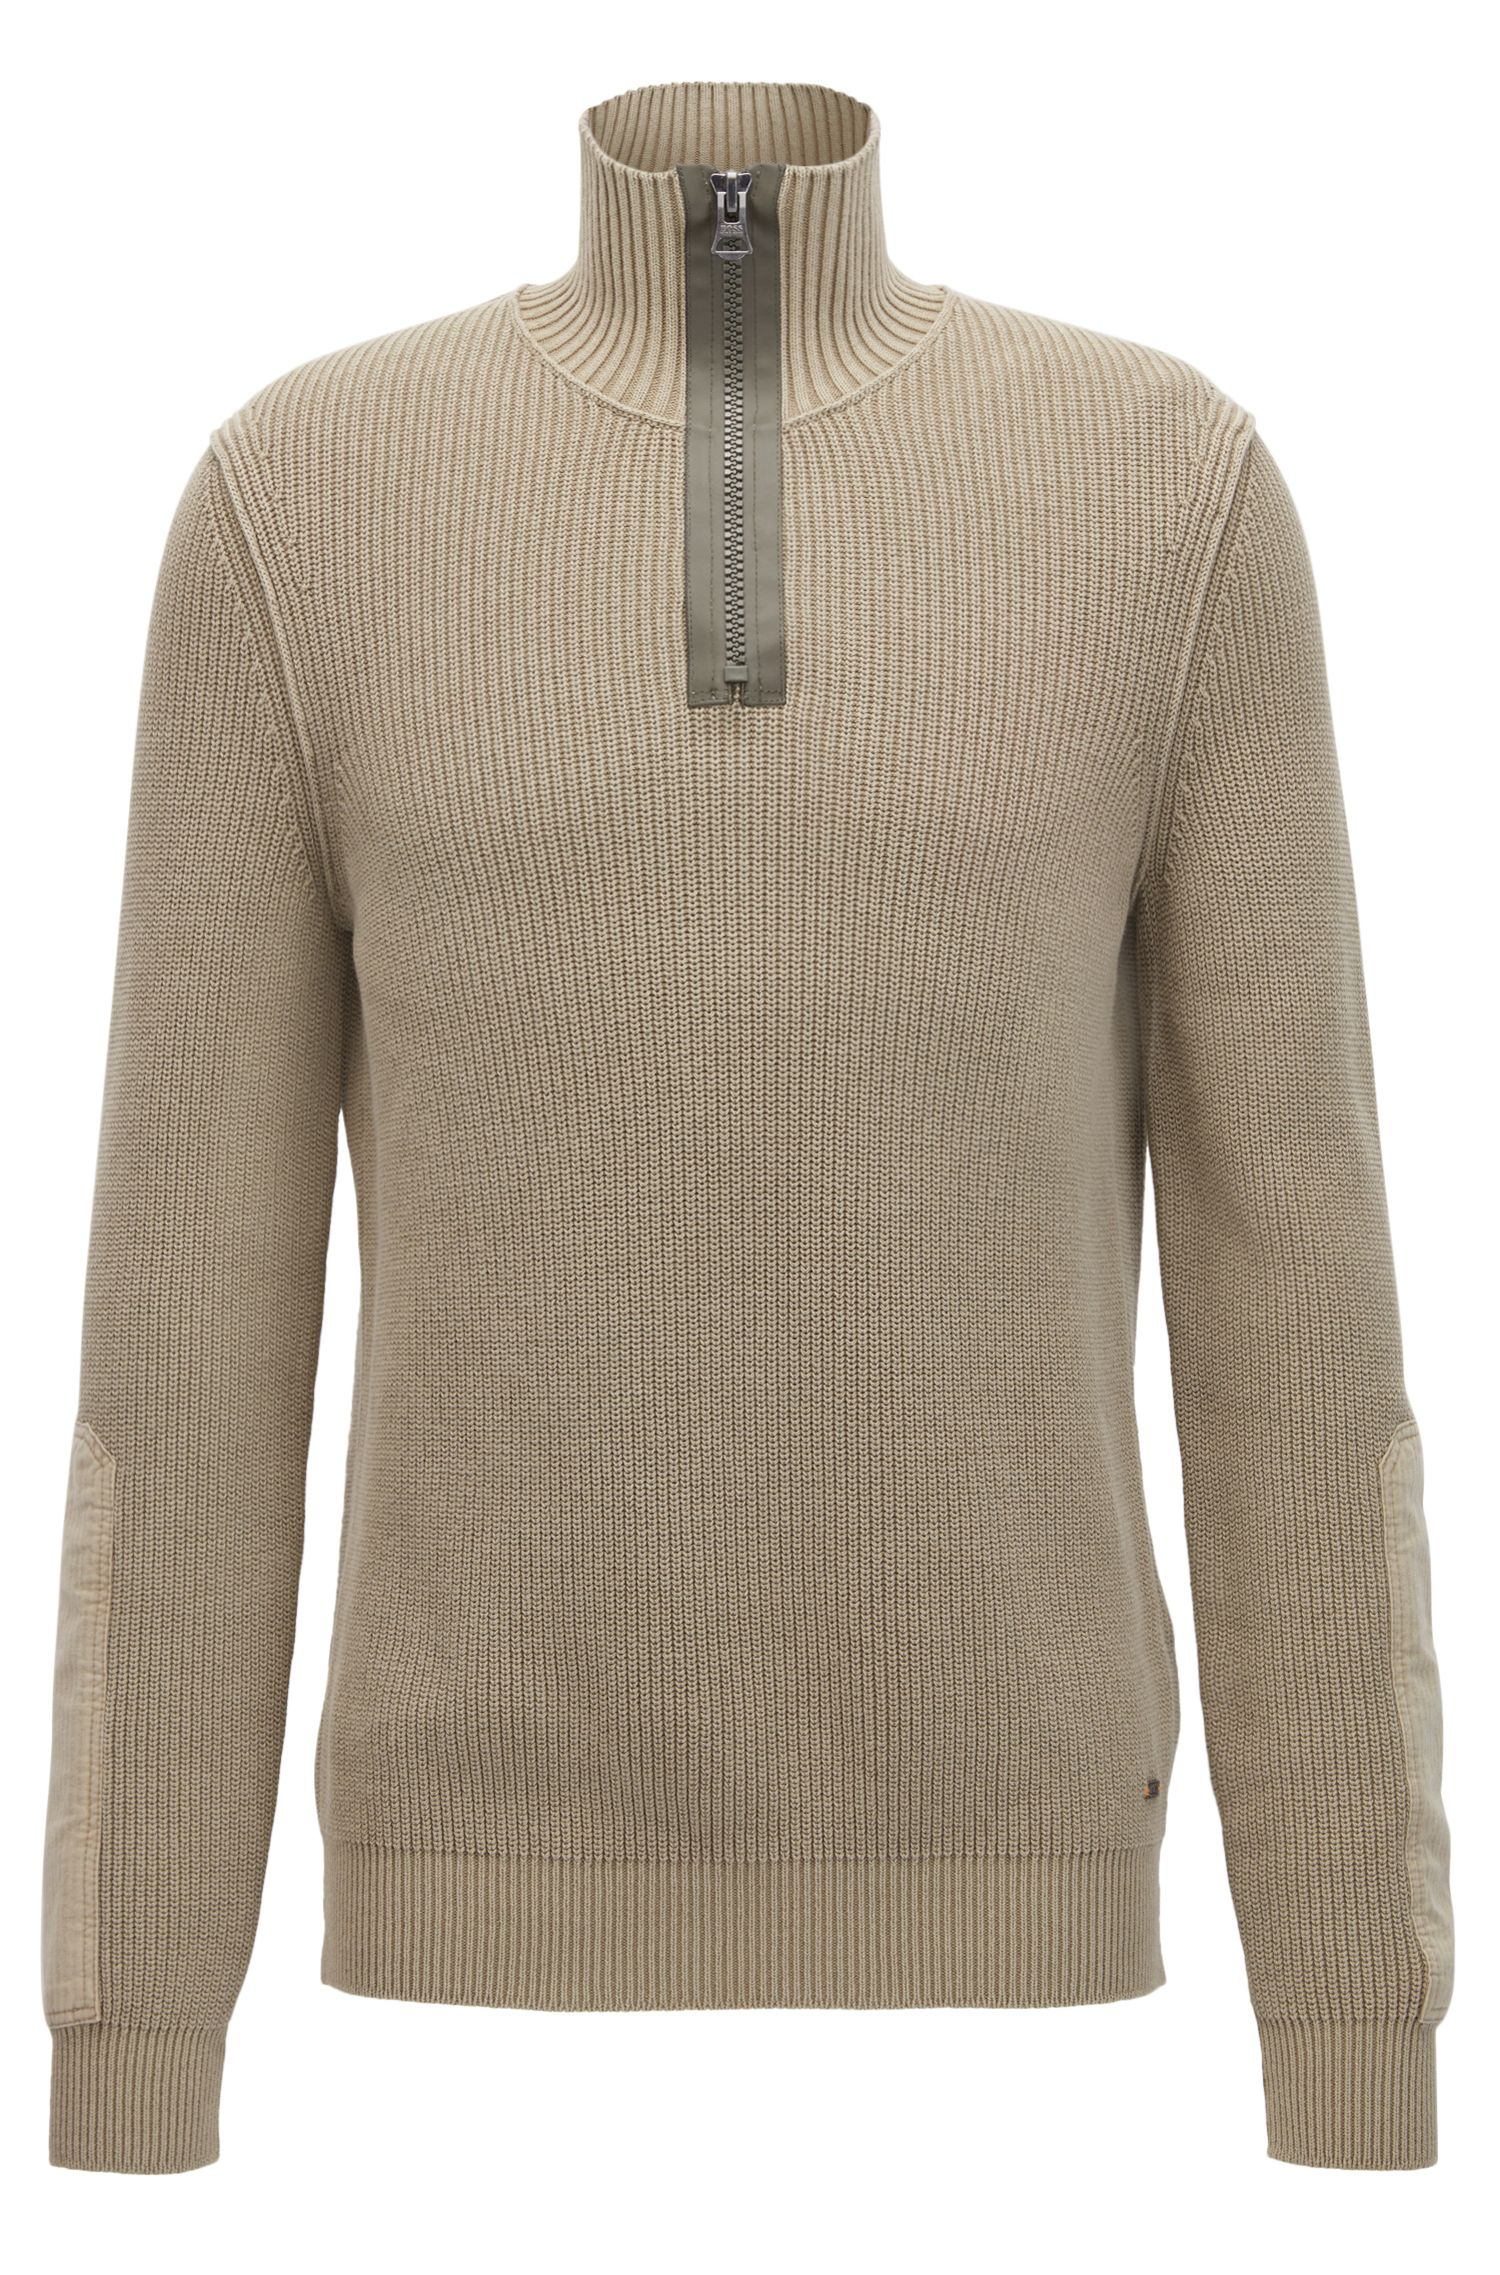 Stonewashed herringbone-knit cotton sweater with chunky-zip neck